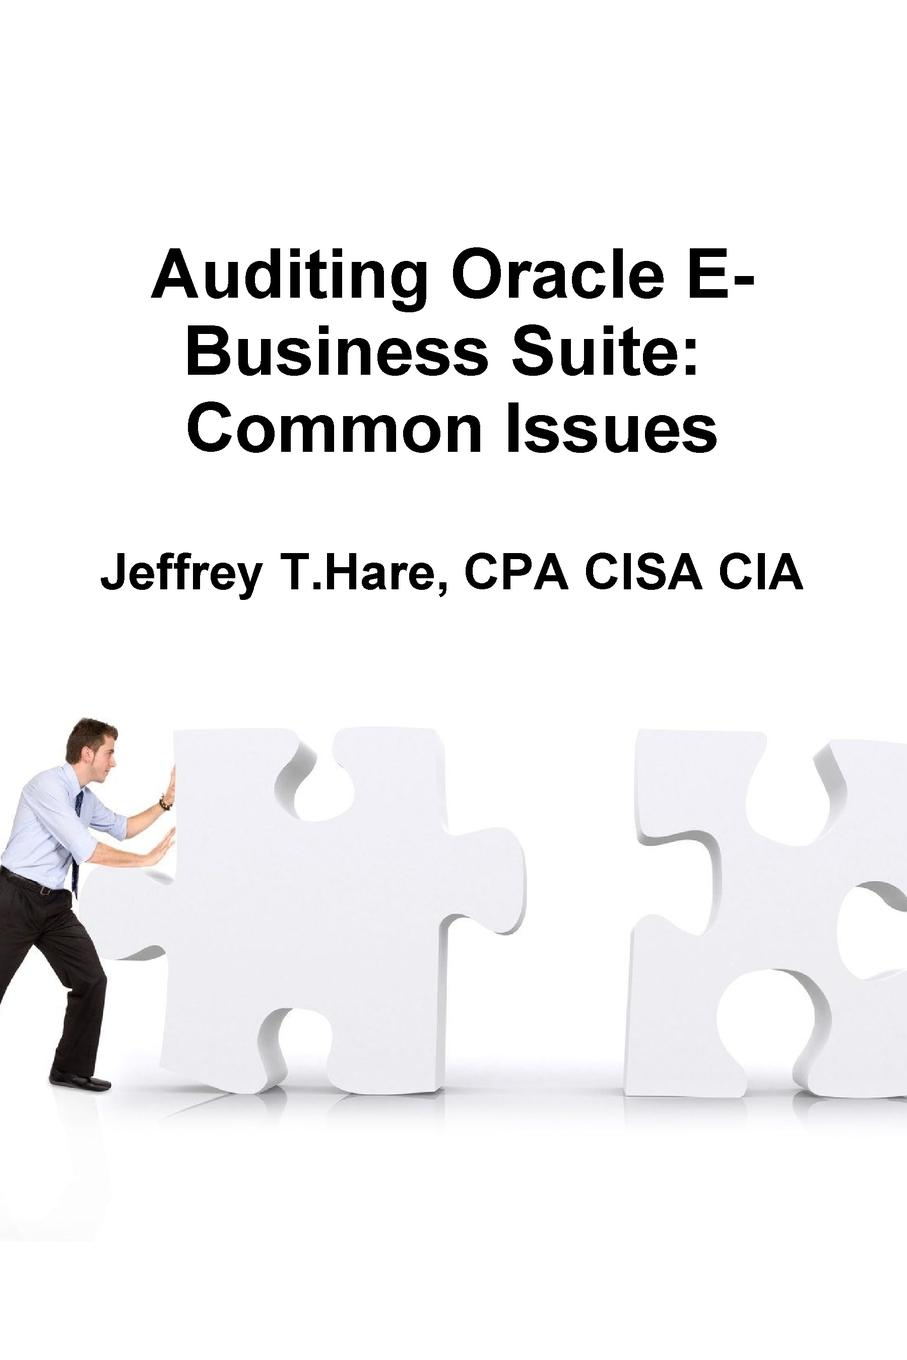 CPA CISA CIA Jeffrey T. Hare Auditing Oracle E-Business Suite. Common Issues e business and security